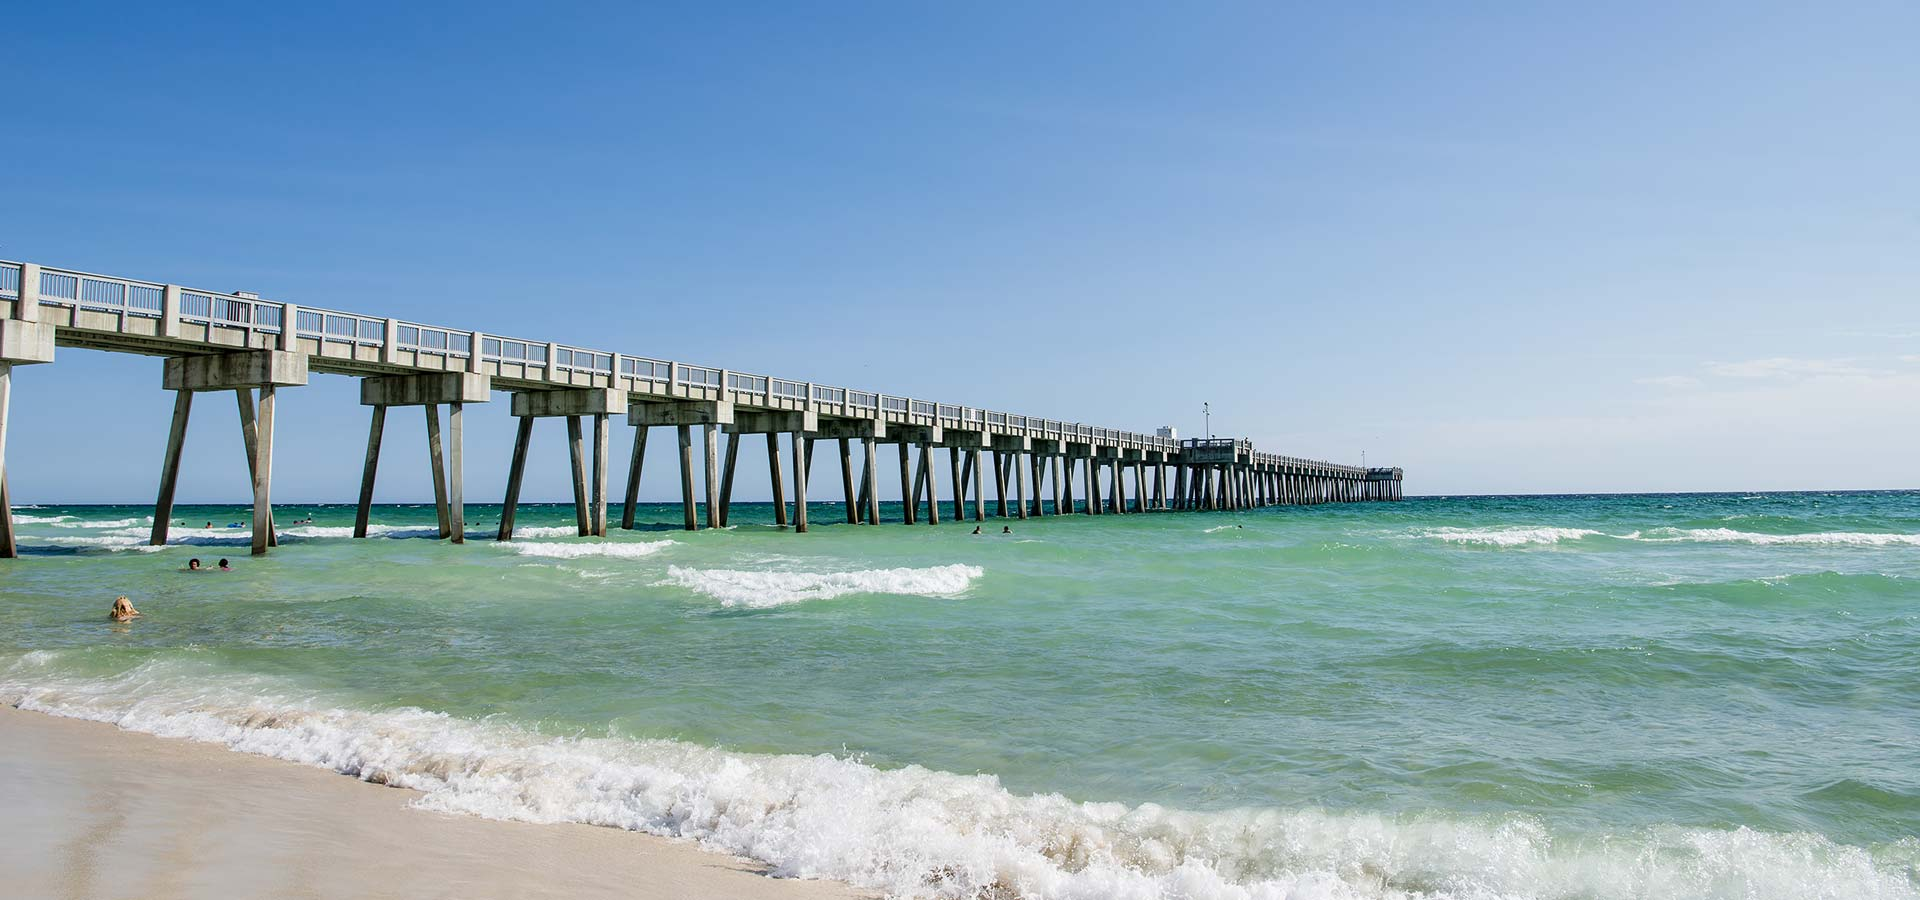 10 FUN Things to Do in Panama City Beach When it's Raining